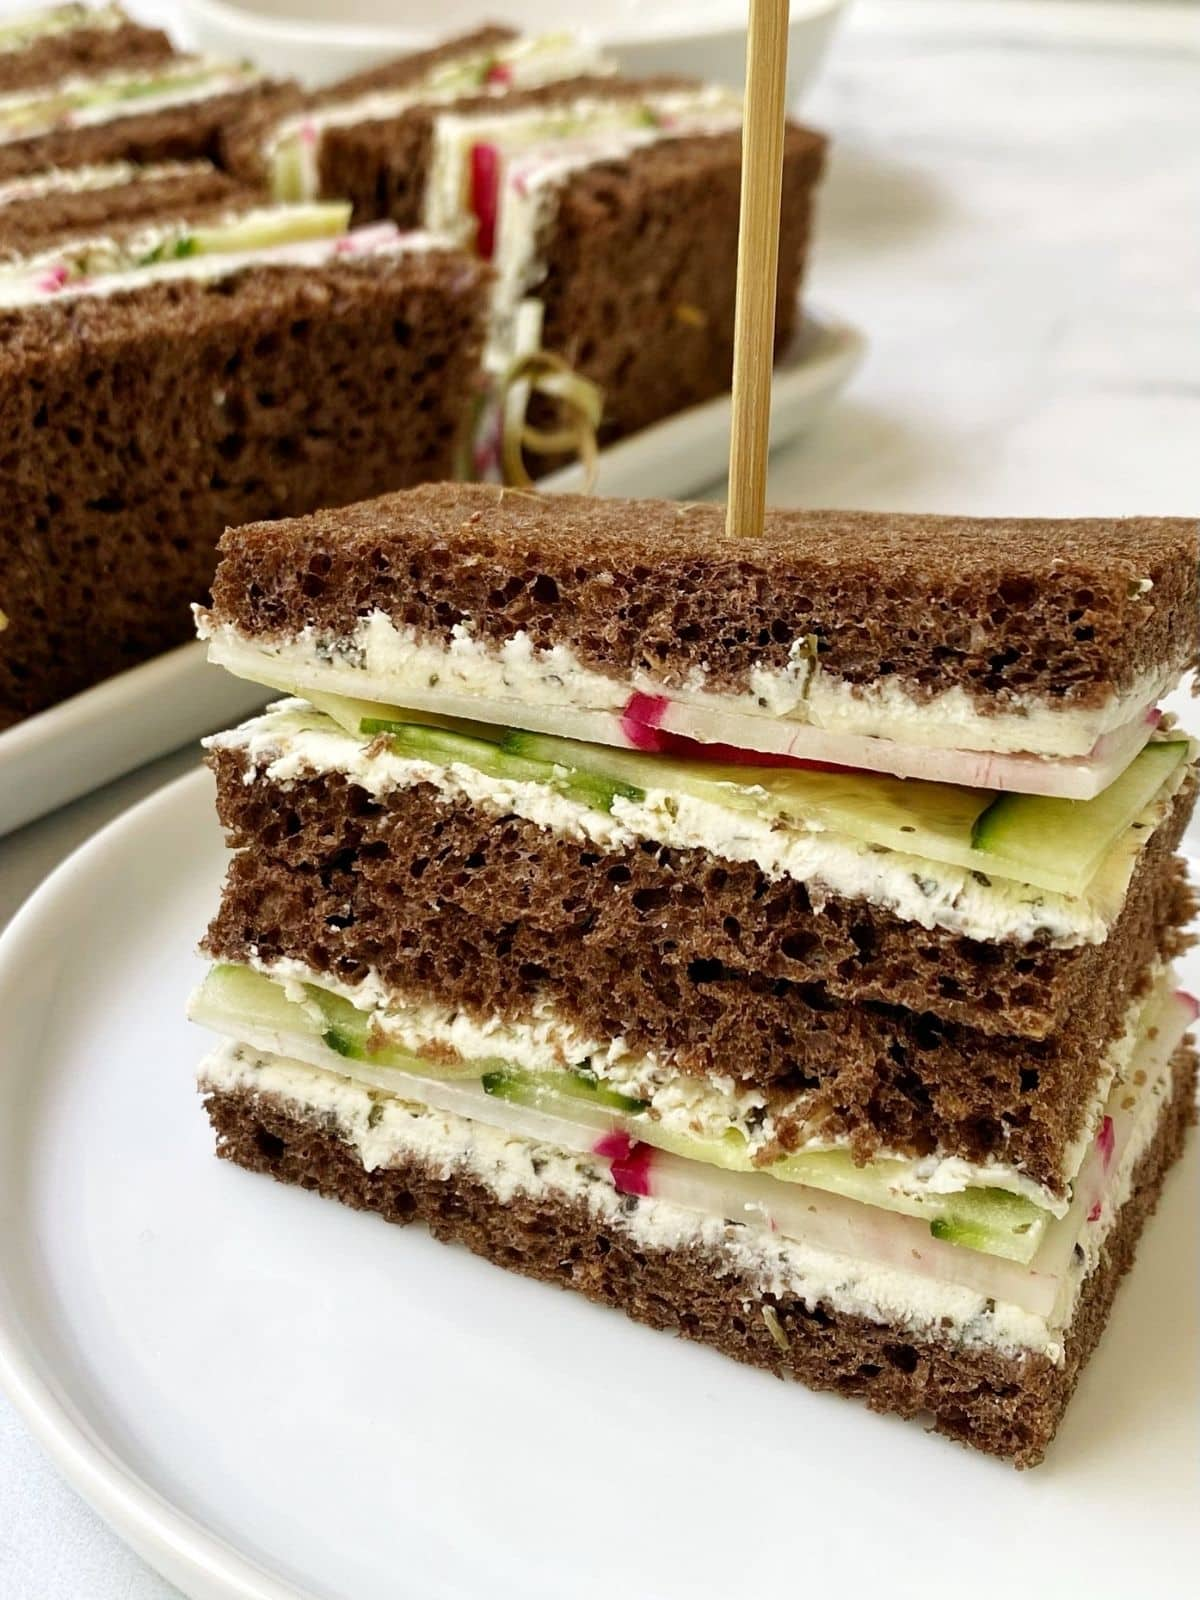 sandwich on a small plate next to a platter of sandwiches